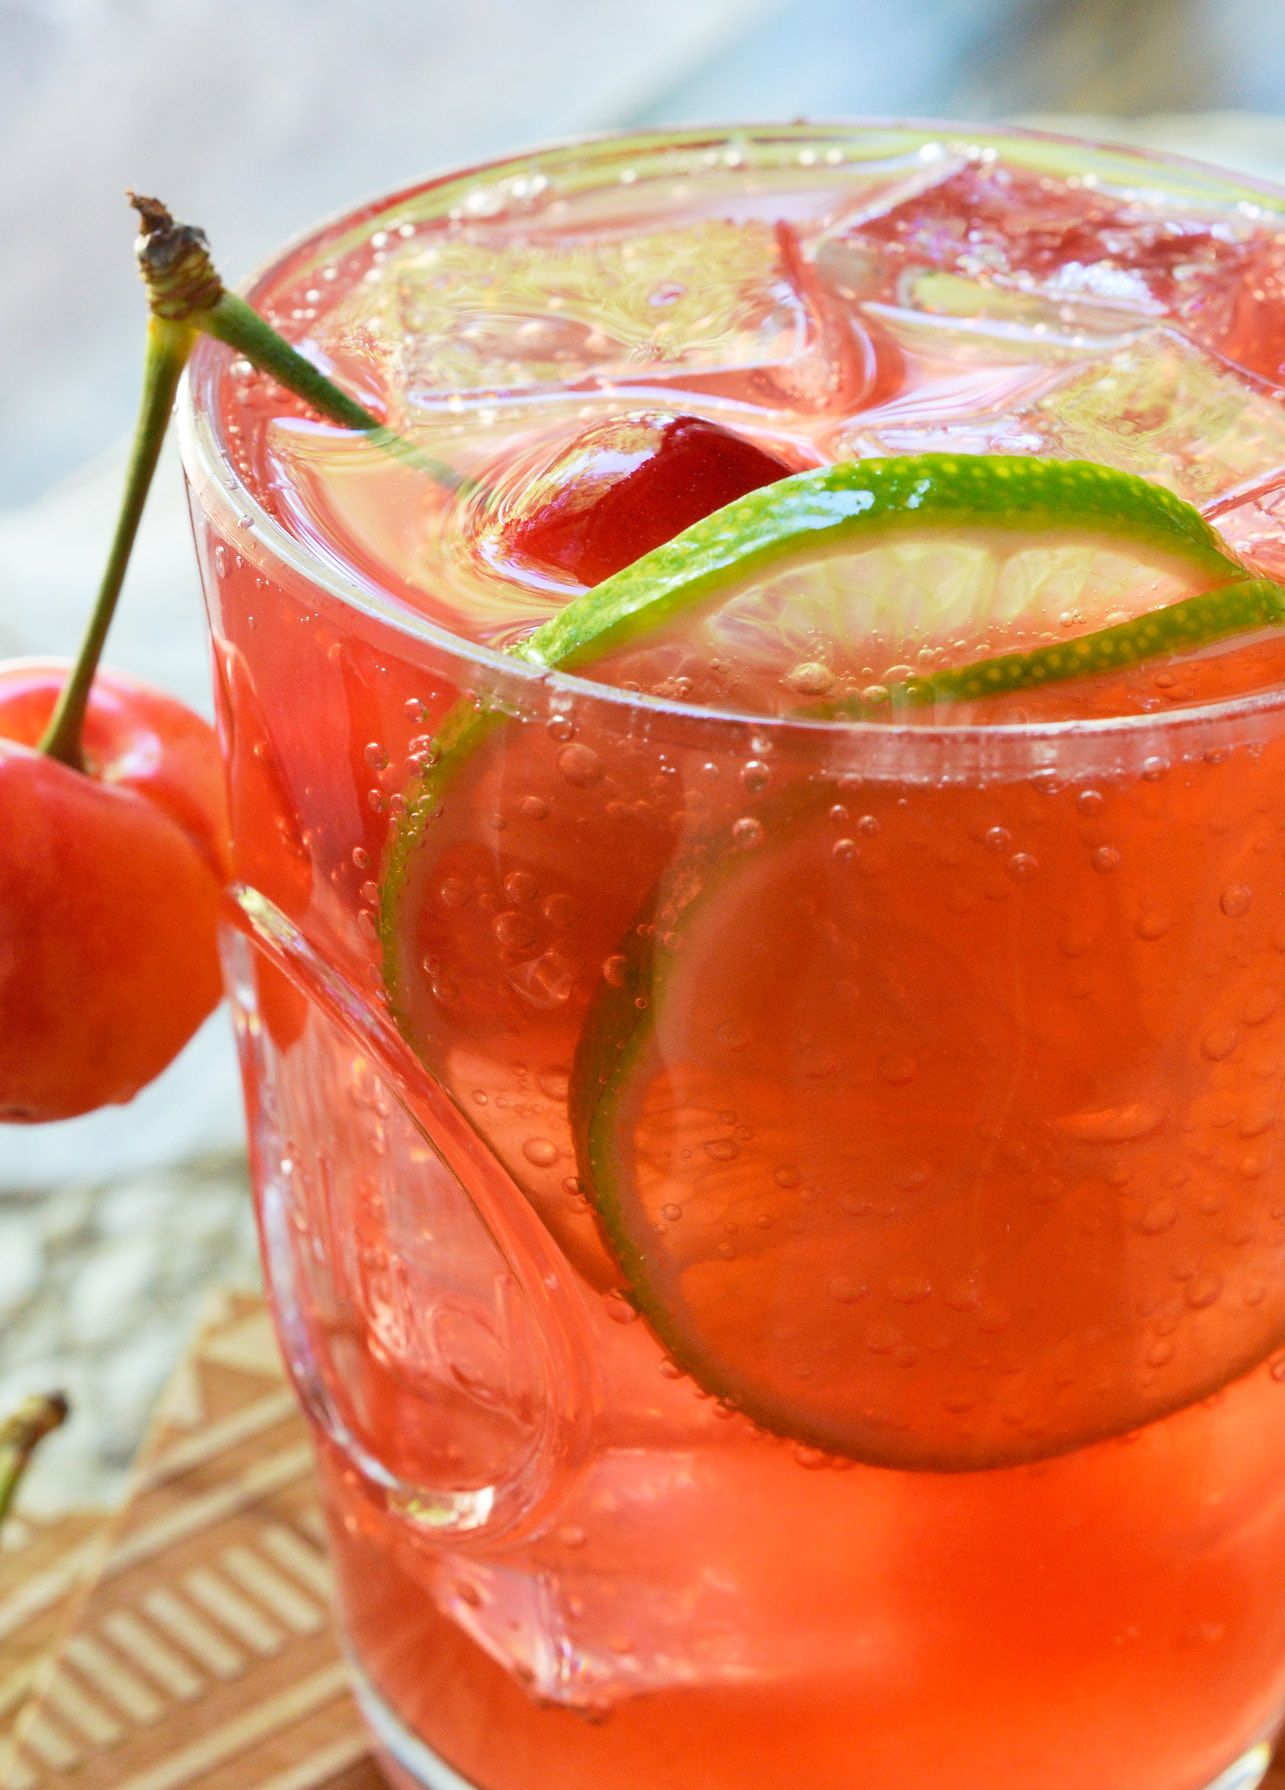 Warm Summer Days Can Only Get Better With This Refreshing Cherry Lime Tequila Tail Simple Summertime Drink Recipe Is Made Fresh